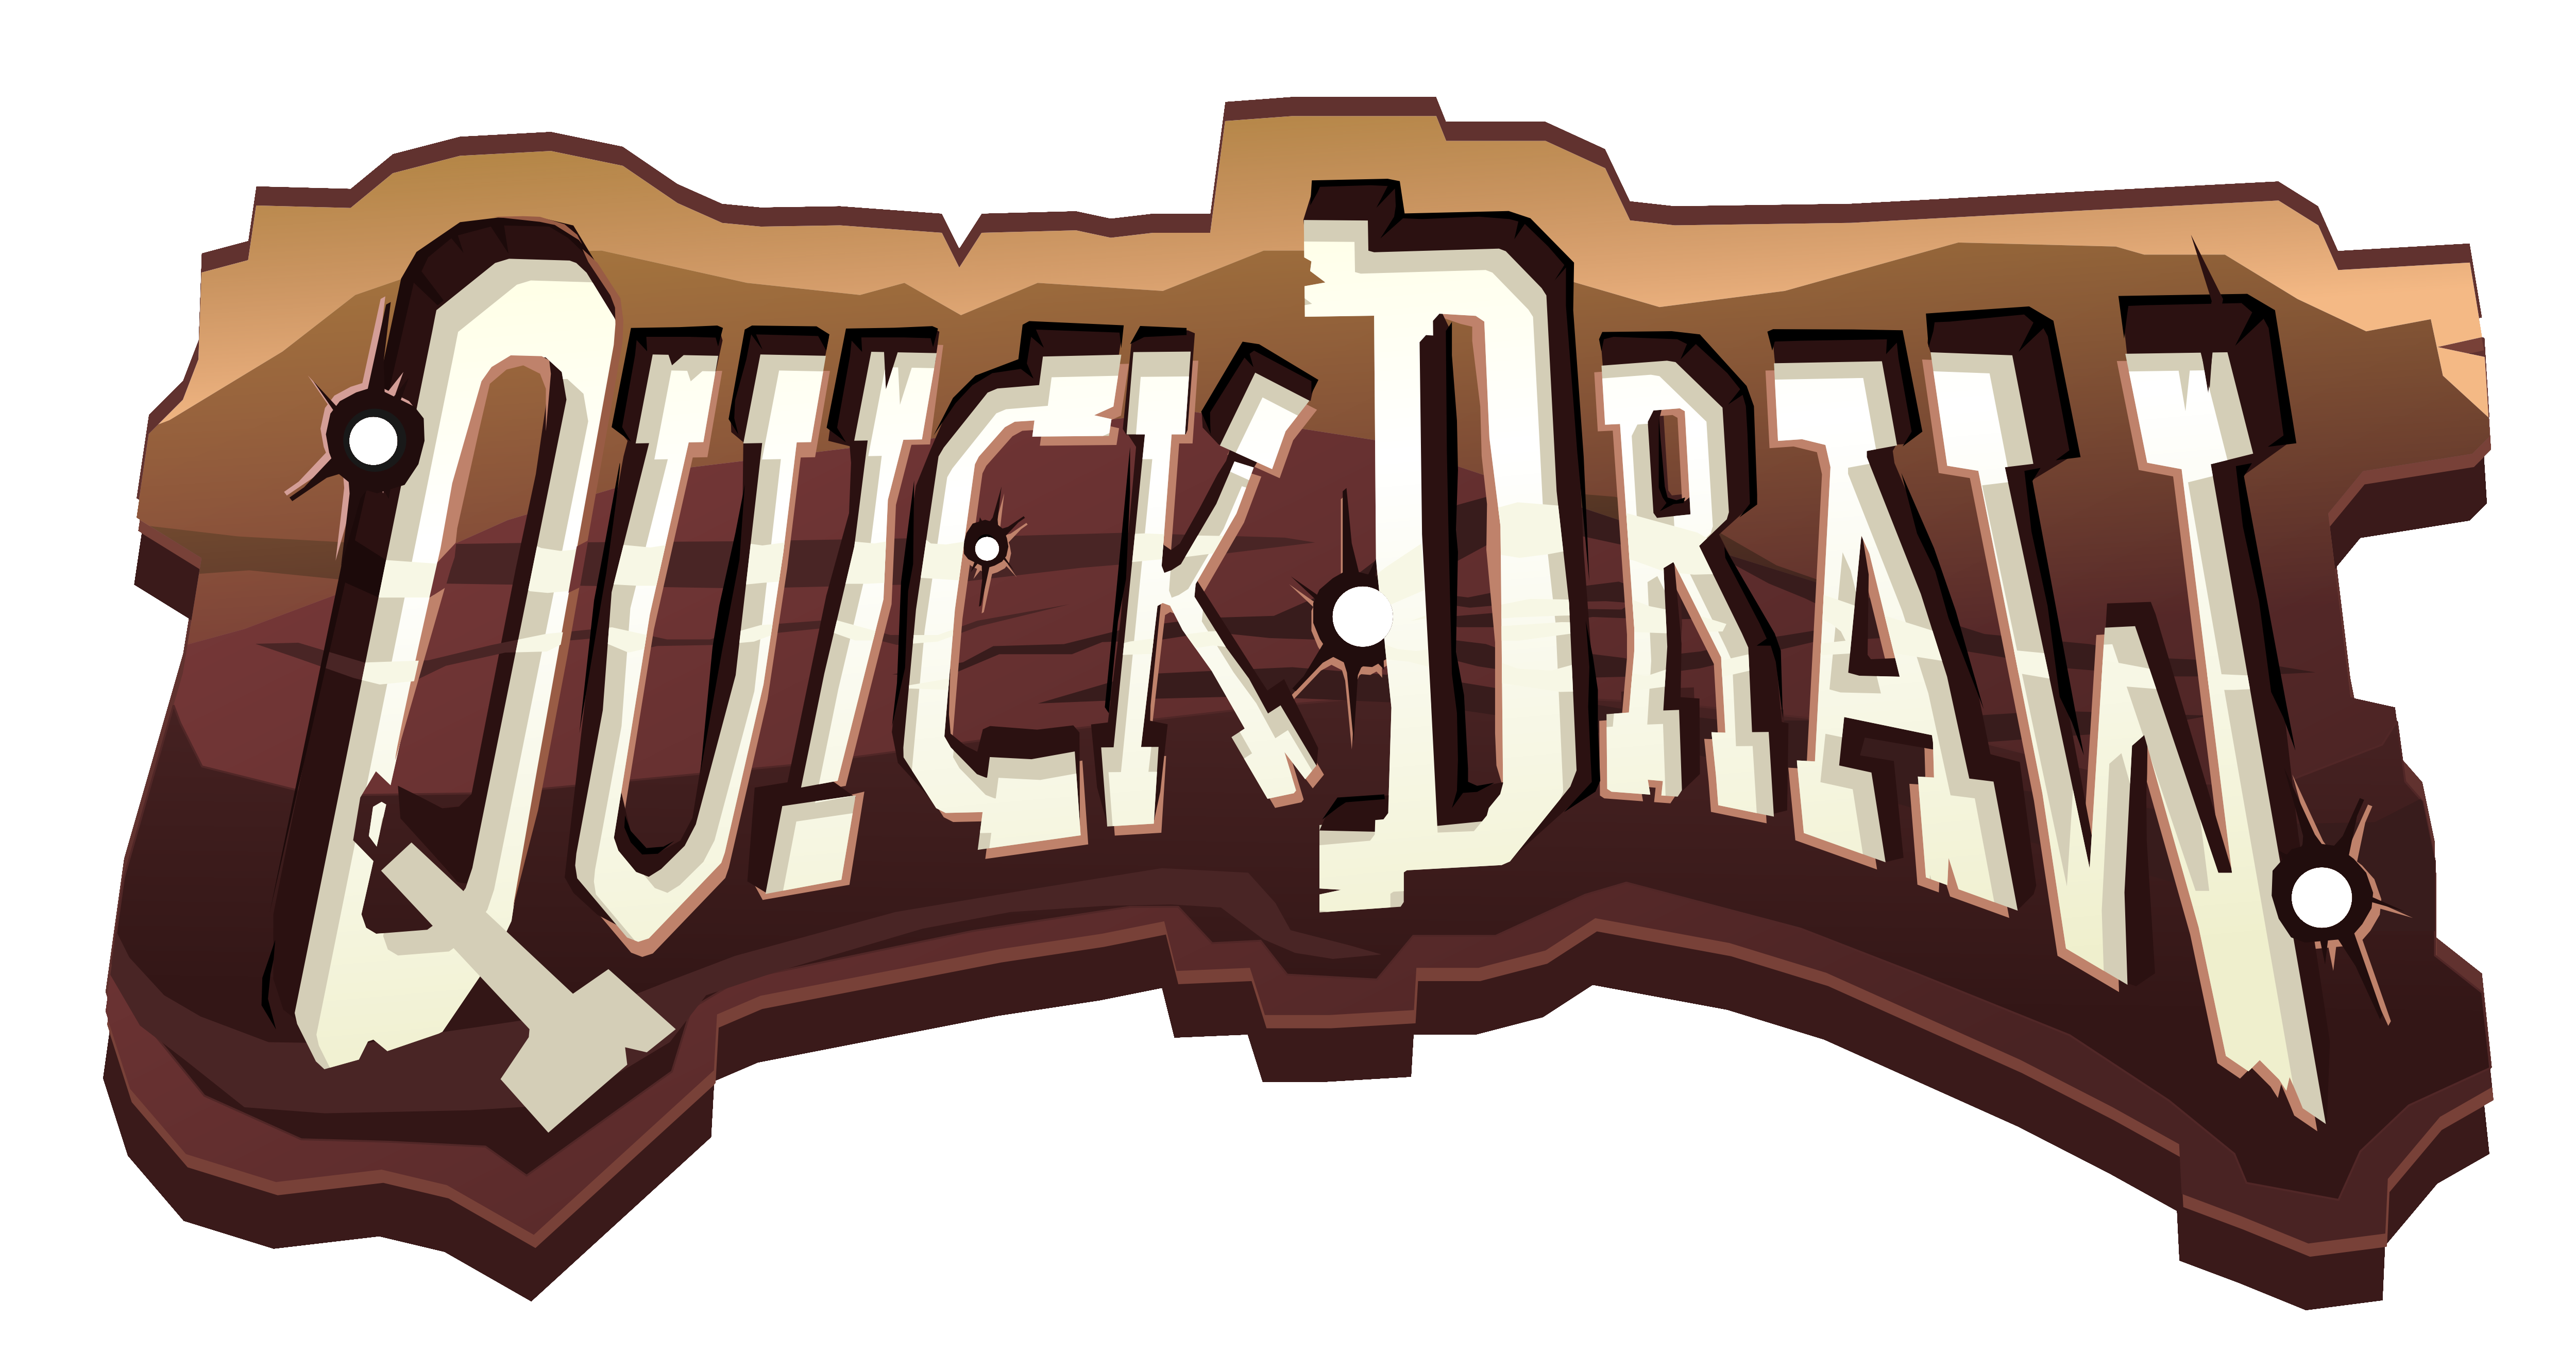 Quickdraw Greenfly Studios